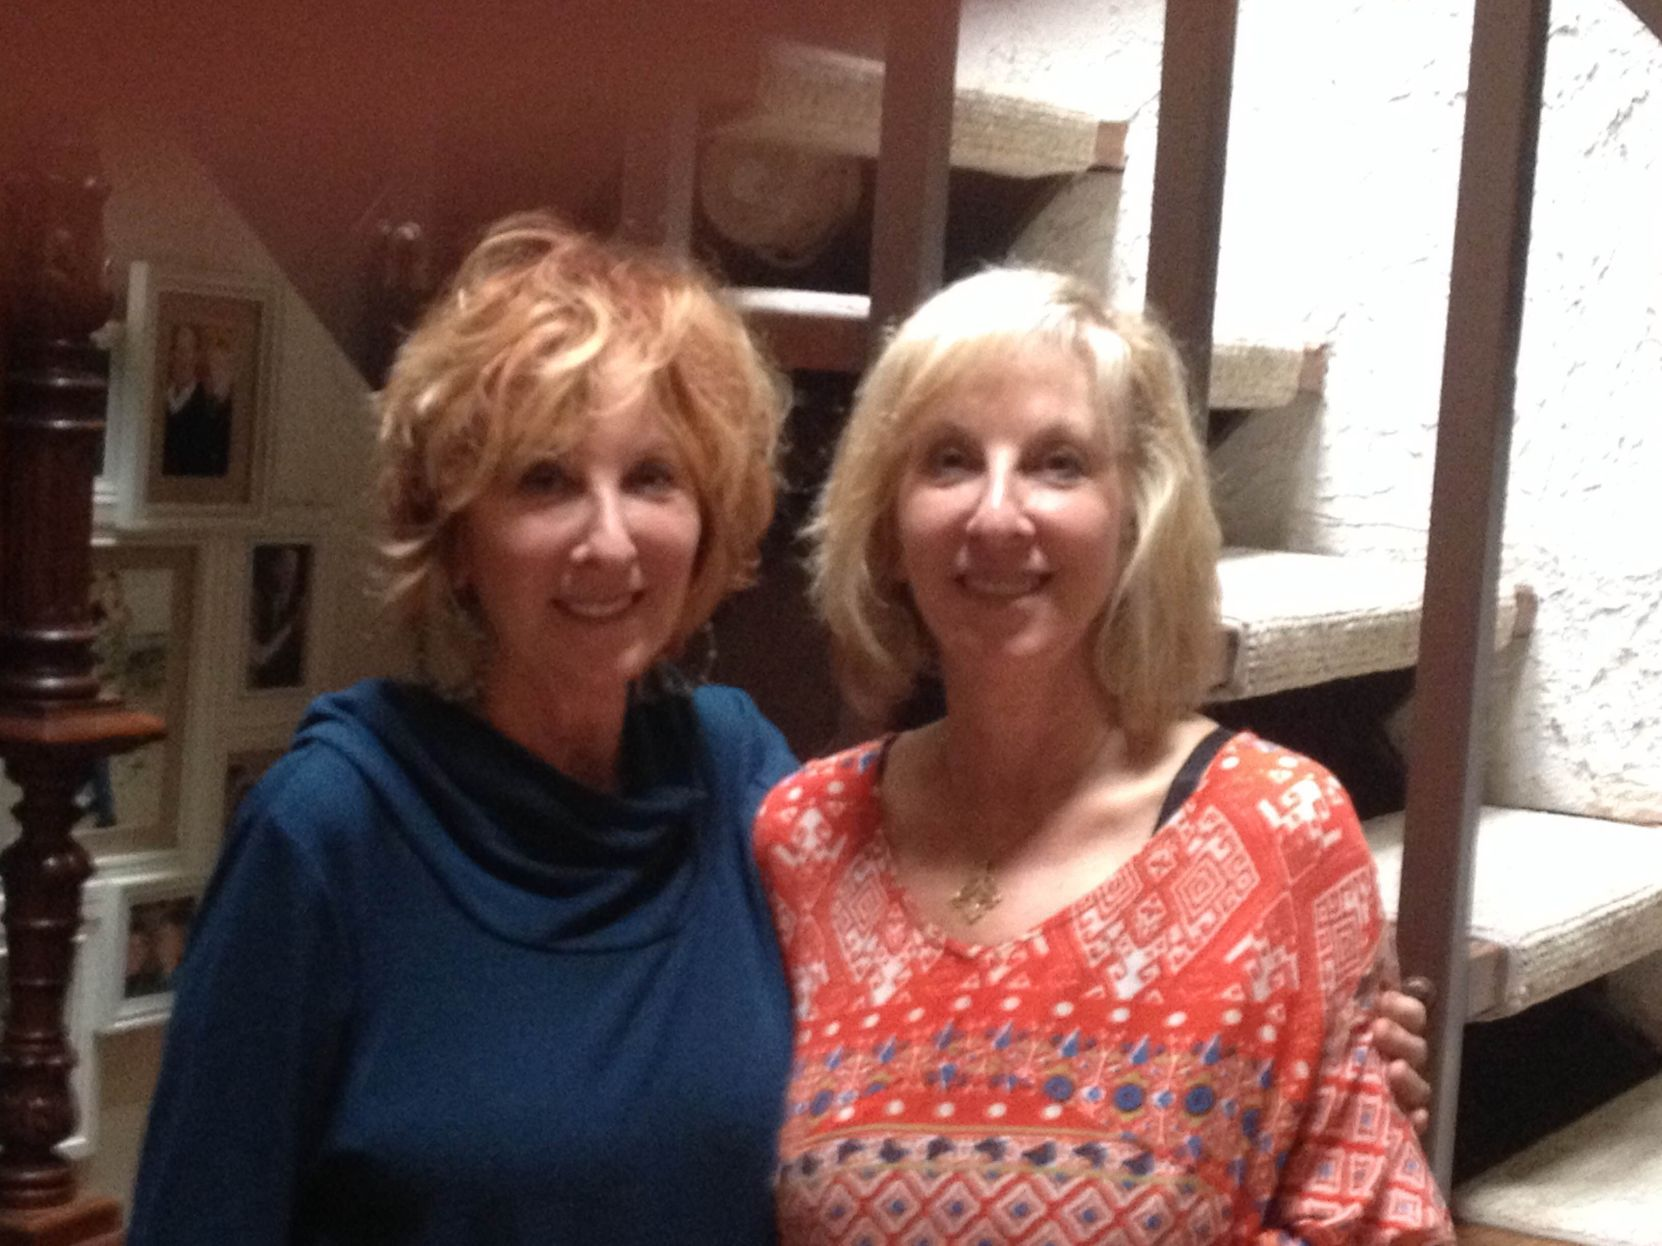 Gail Staal and Tal Schwartz